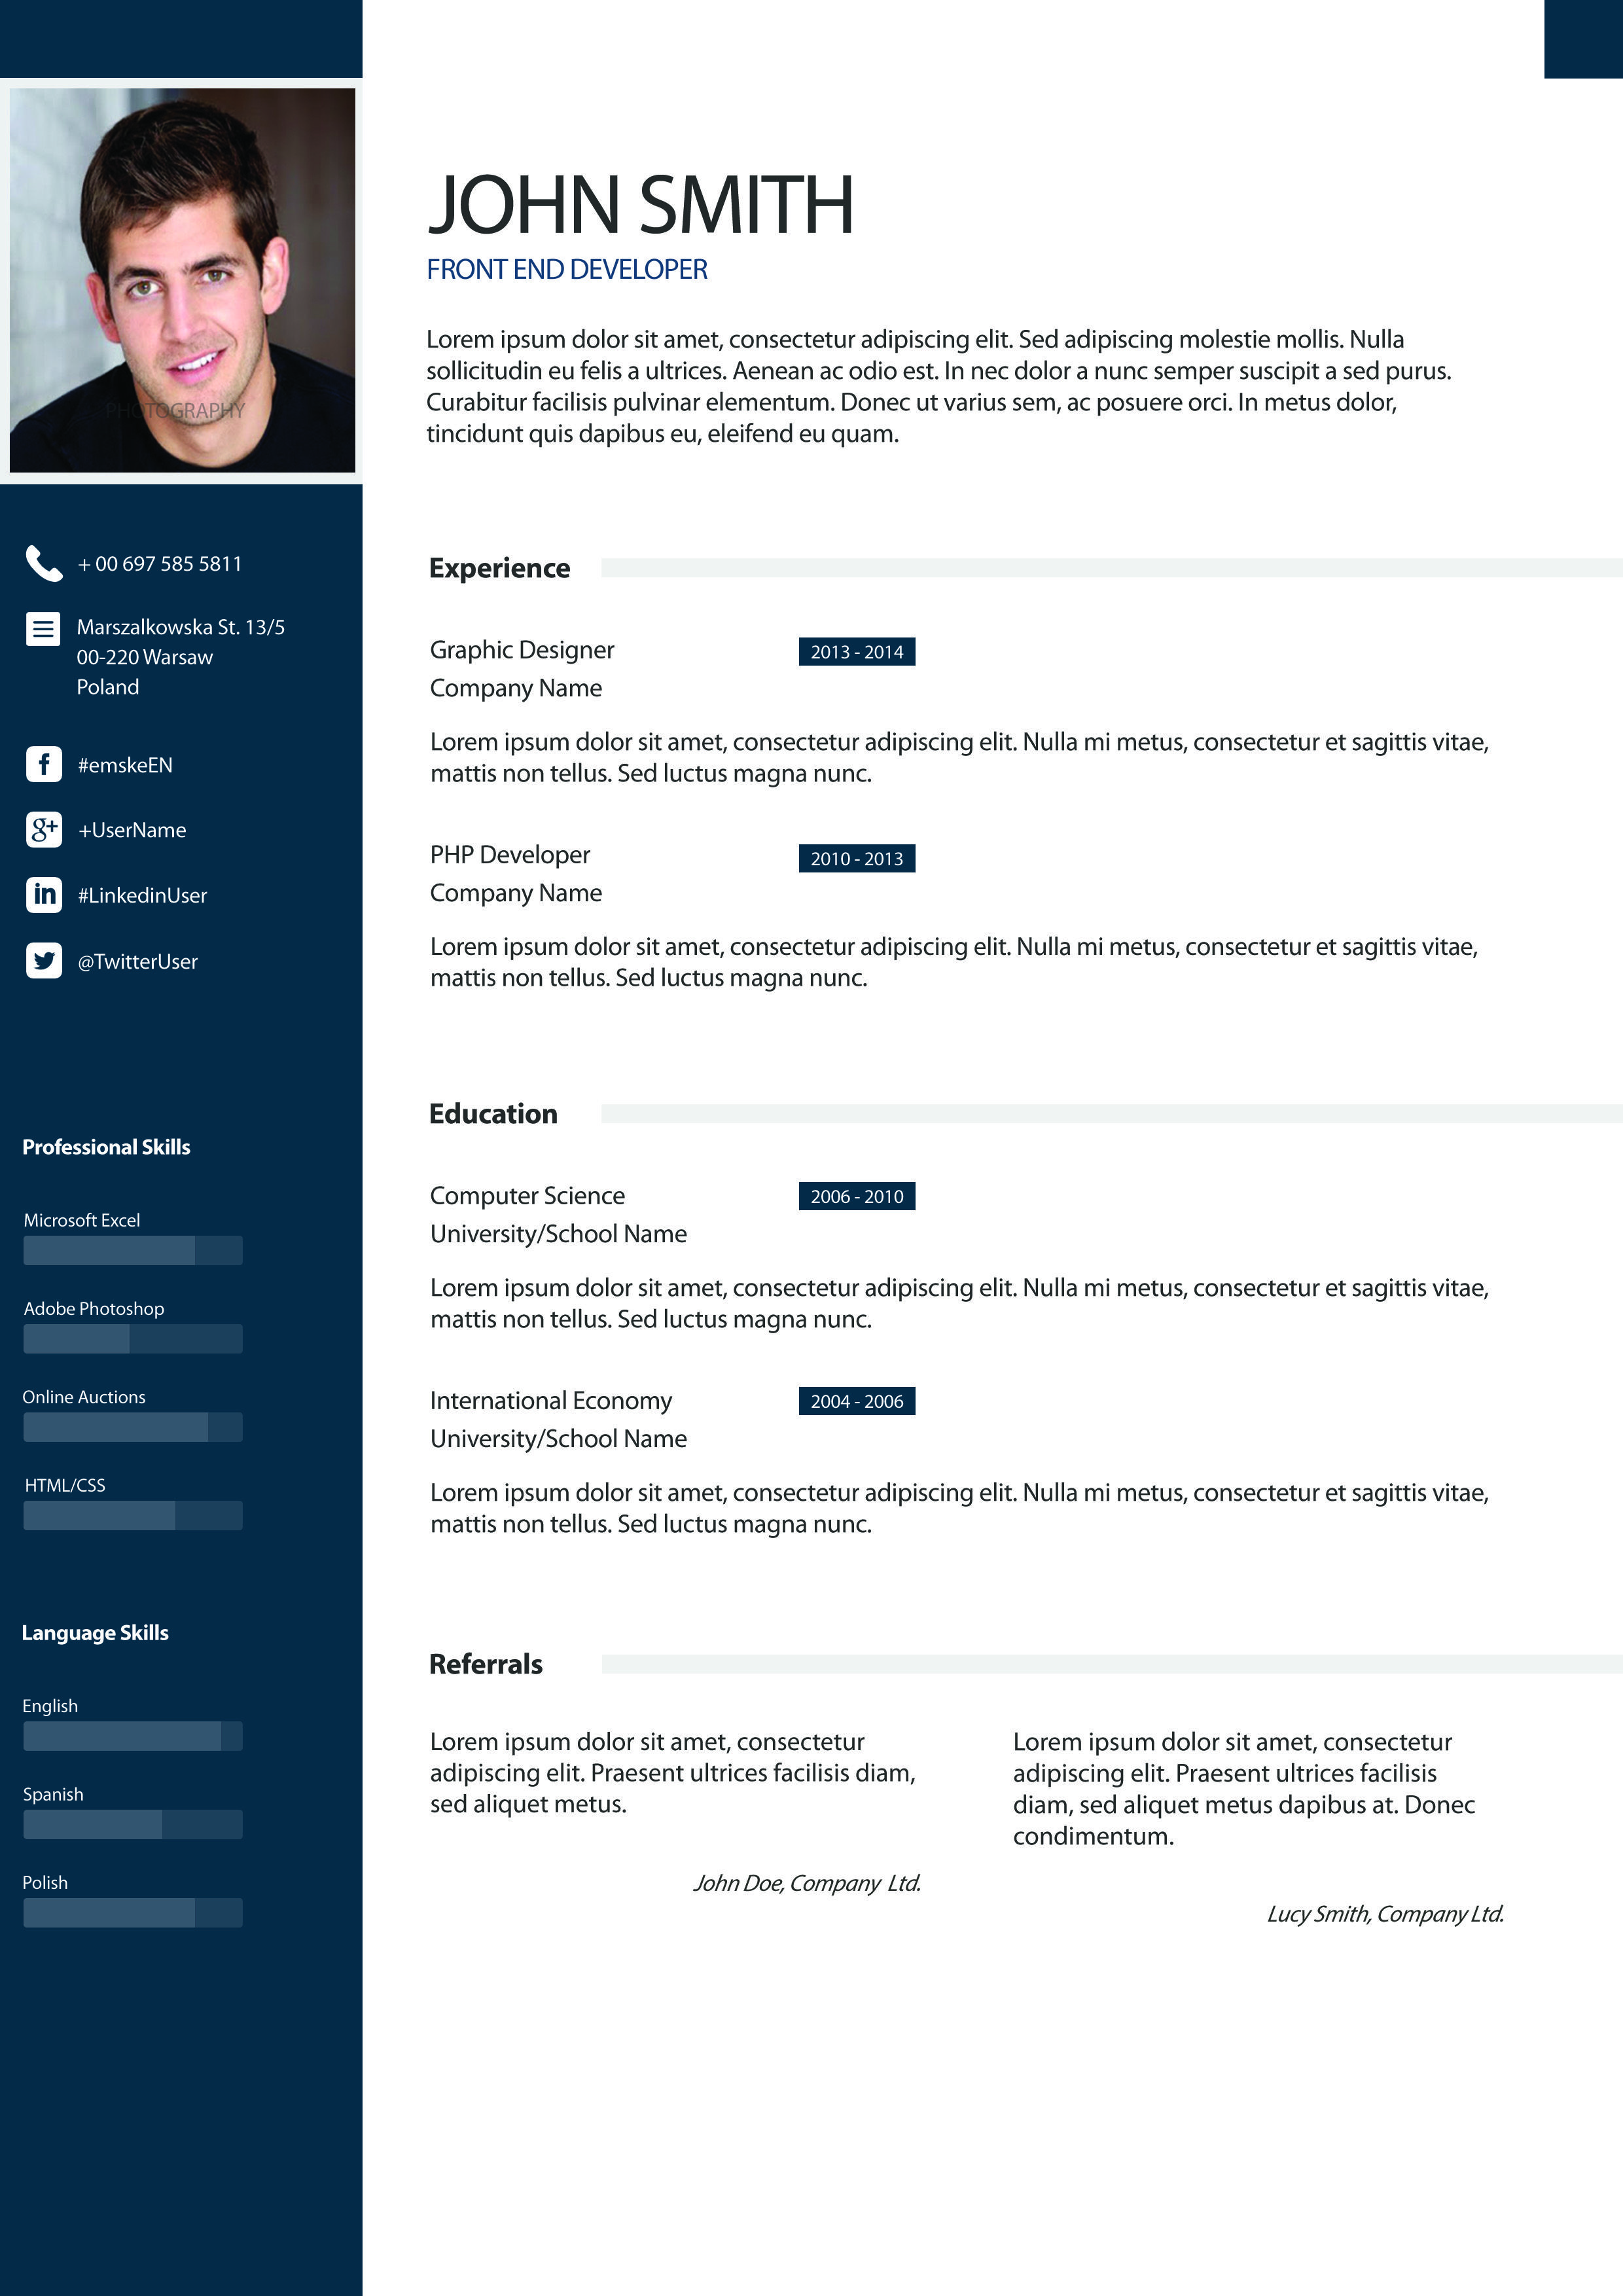 example of creative cv design layout